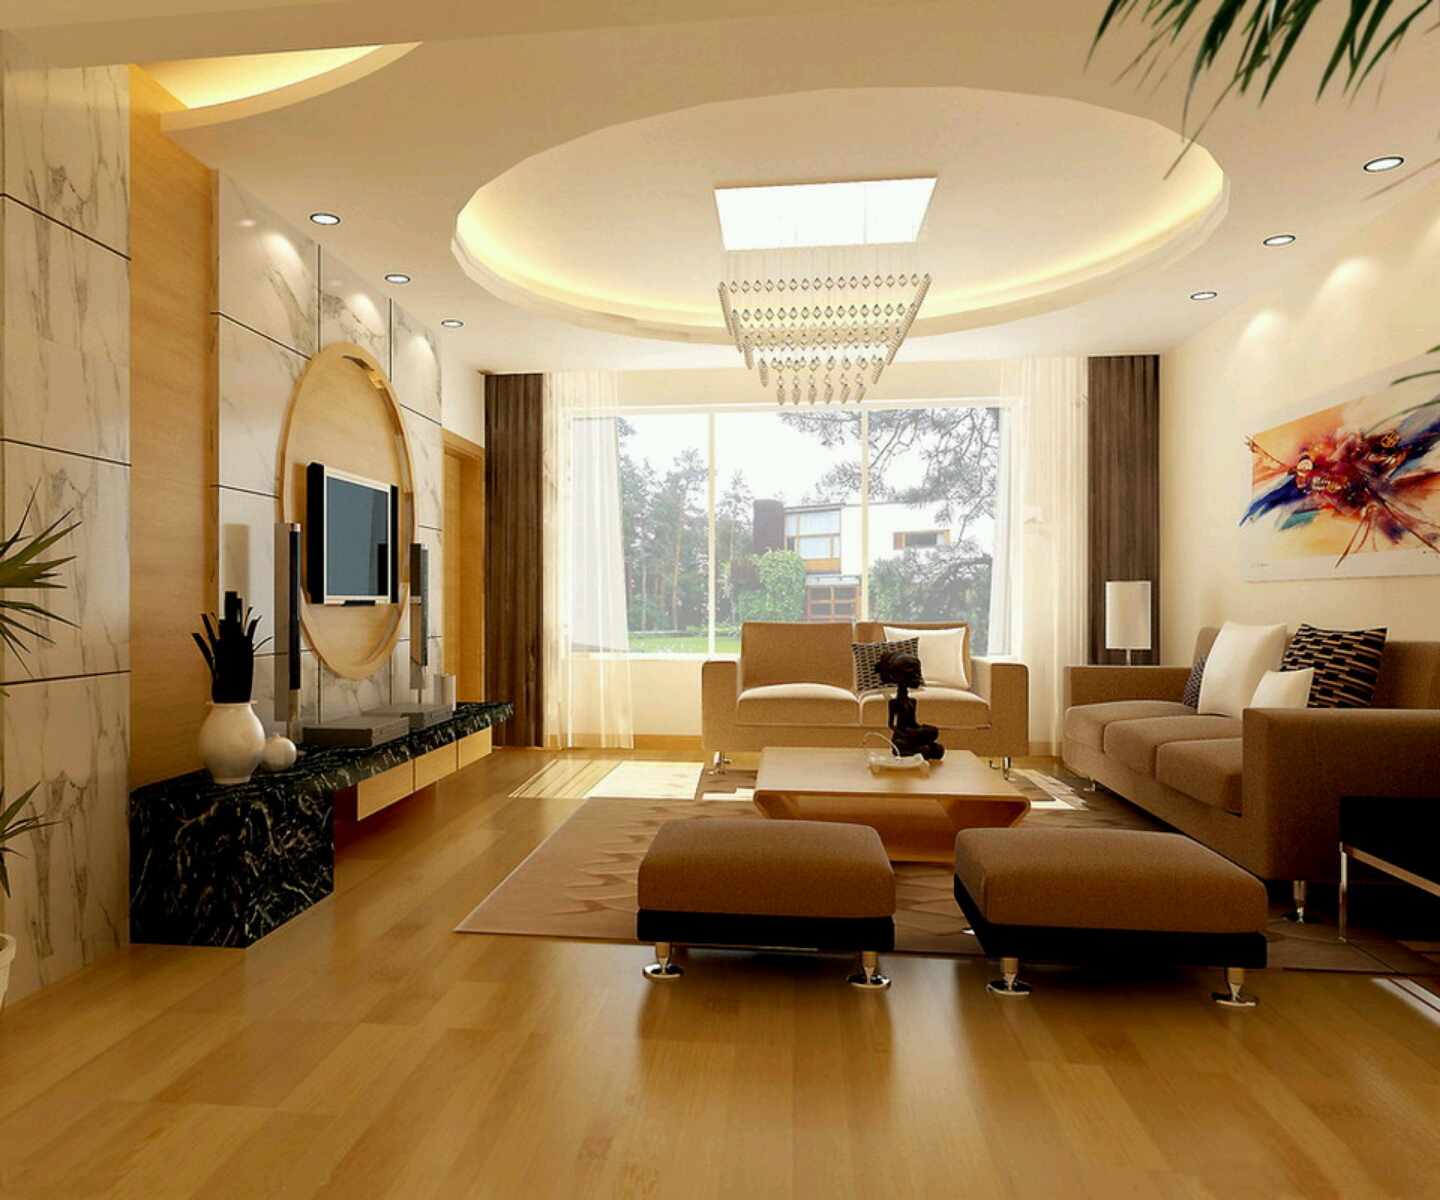 Modern interior decoration living rooms ceiling designs for Living room interior video